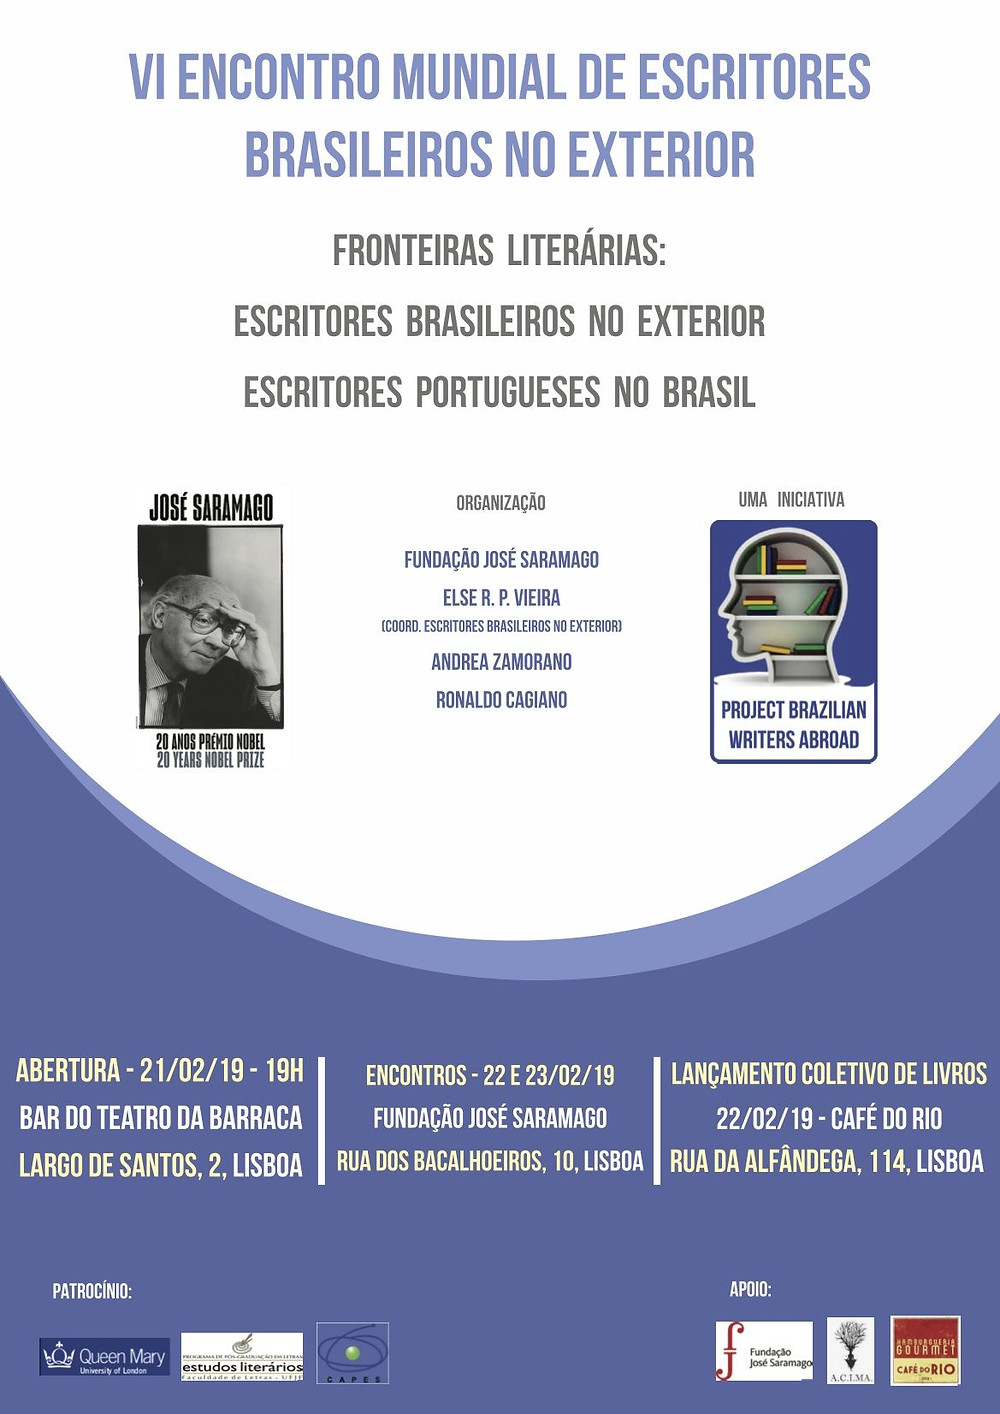 I'll be talking about cross-cultural psychiatry, migration and poetry at the VI World Conference of Brazilian Writers Abroad in Lisbon, between 21th and 23rd February in Lisbon.